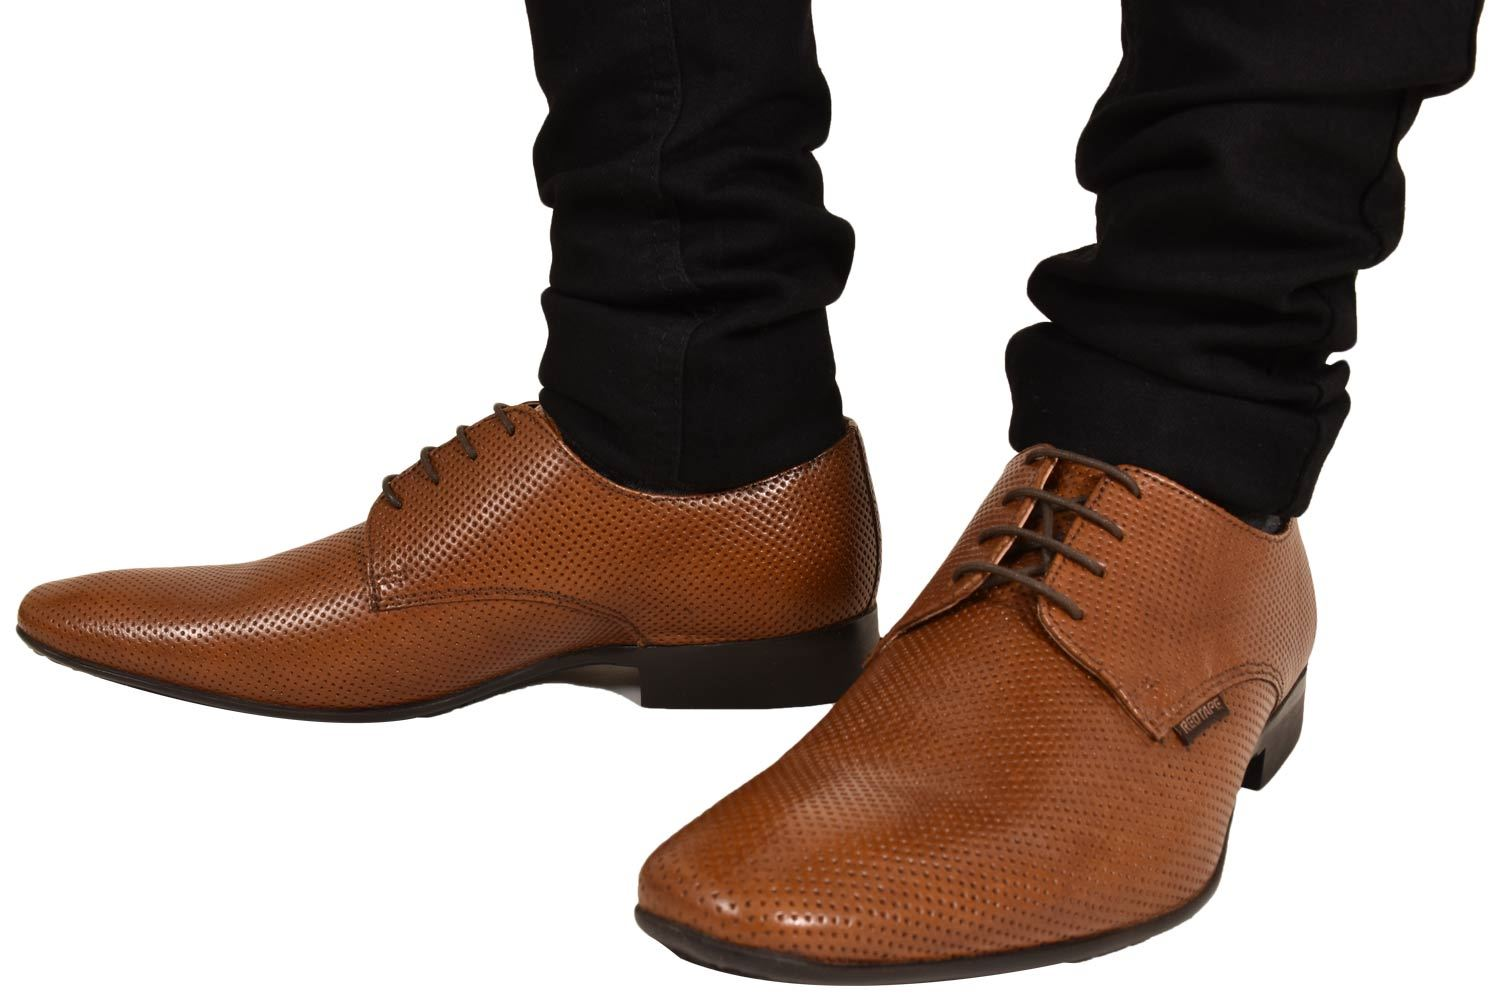 Mens-UK-Style-Leather-Lining-Formal-Office-Wedding-Smart-Work-Brogue-Shoes thumbnail 16